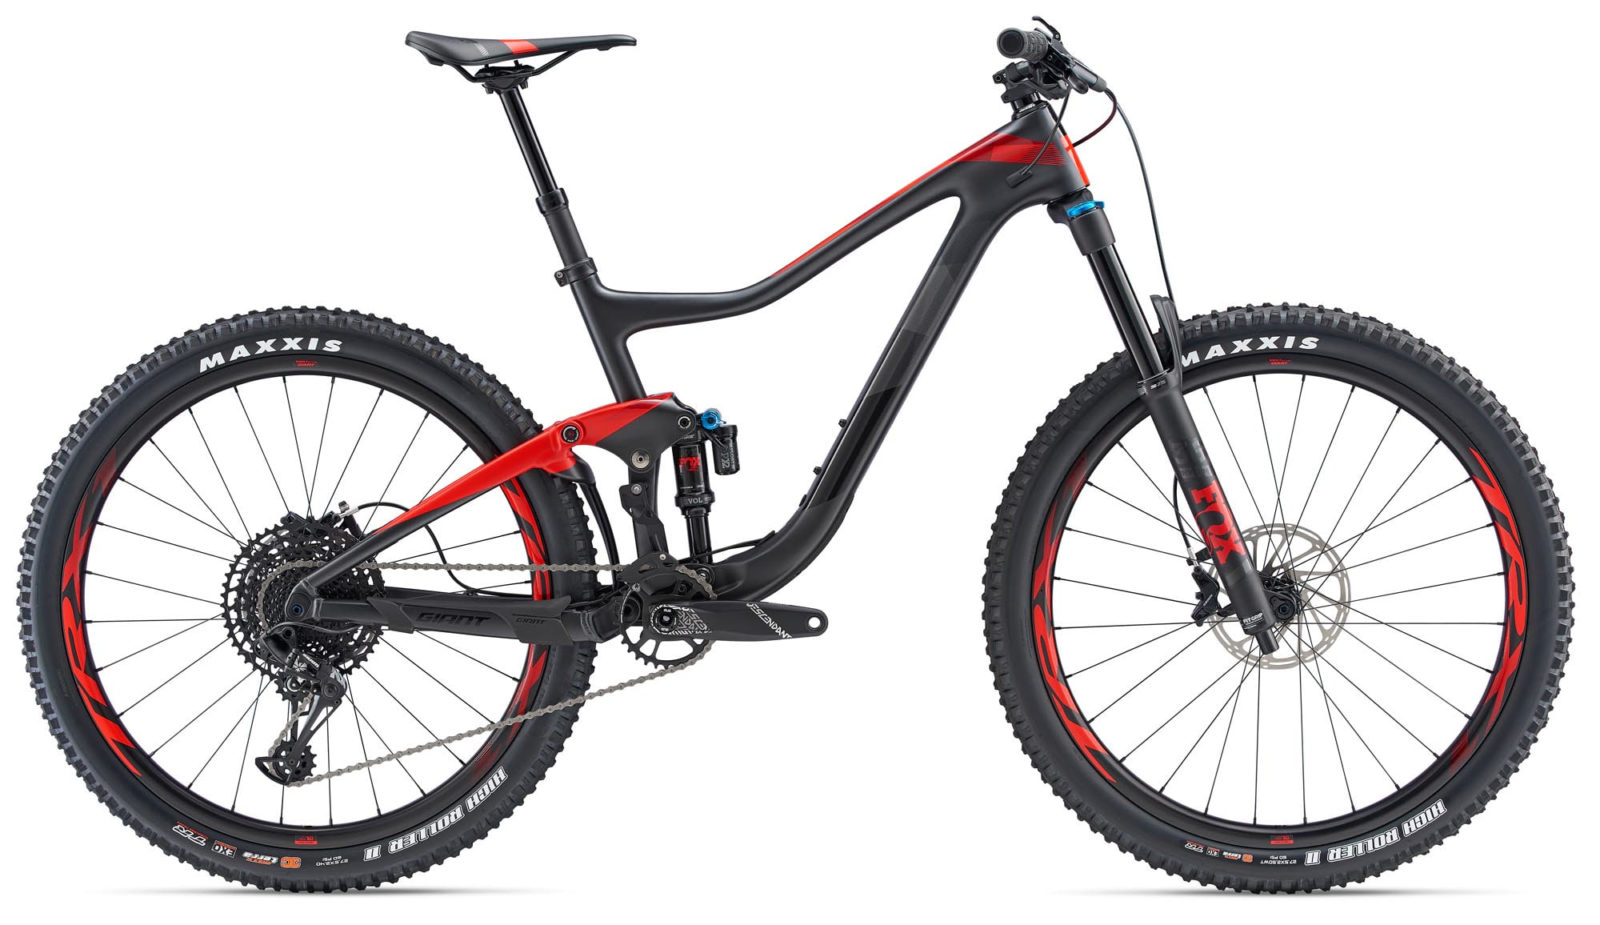 Gaint MTB Trance Advanced 2 27.5 2019